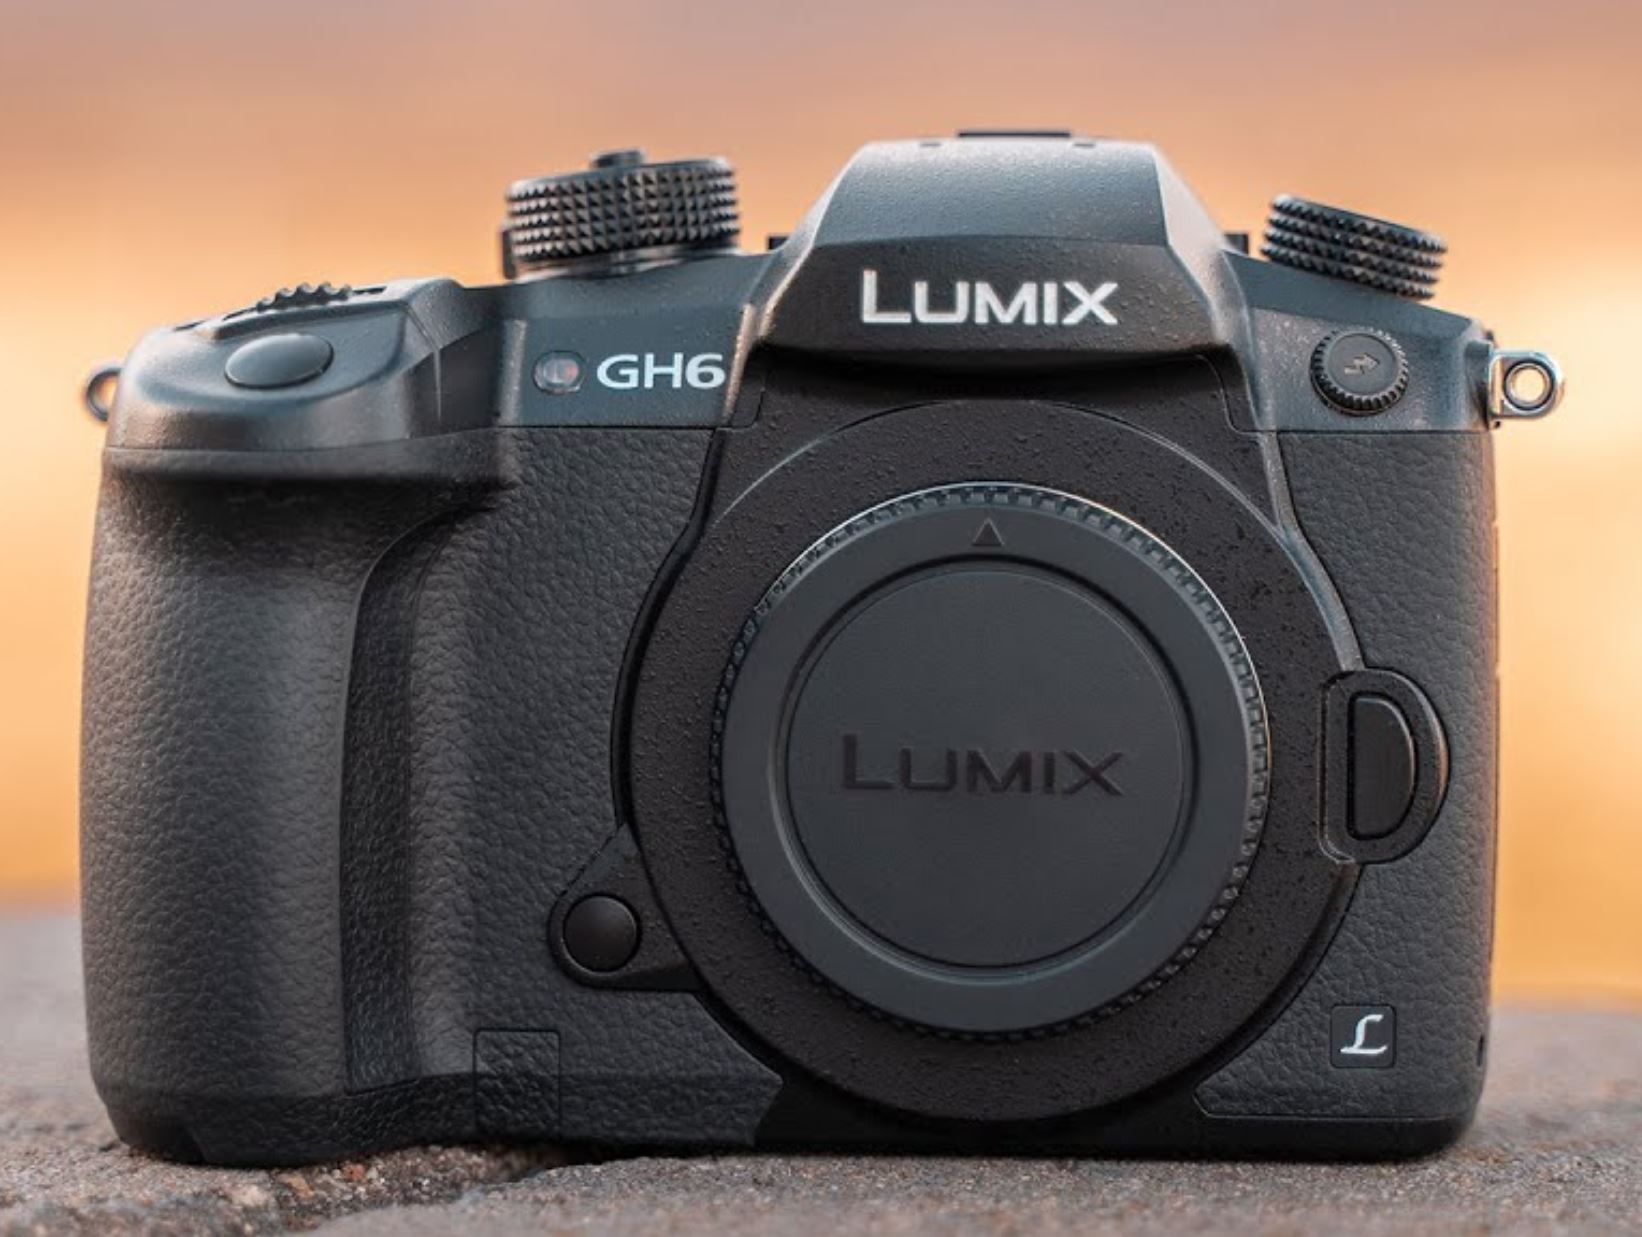 Panasonic Lumix GH6 could now be delayed until 2021